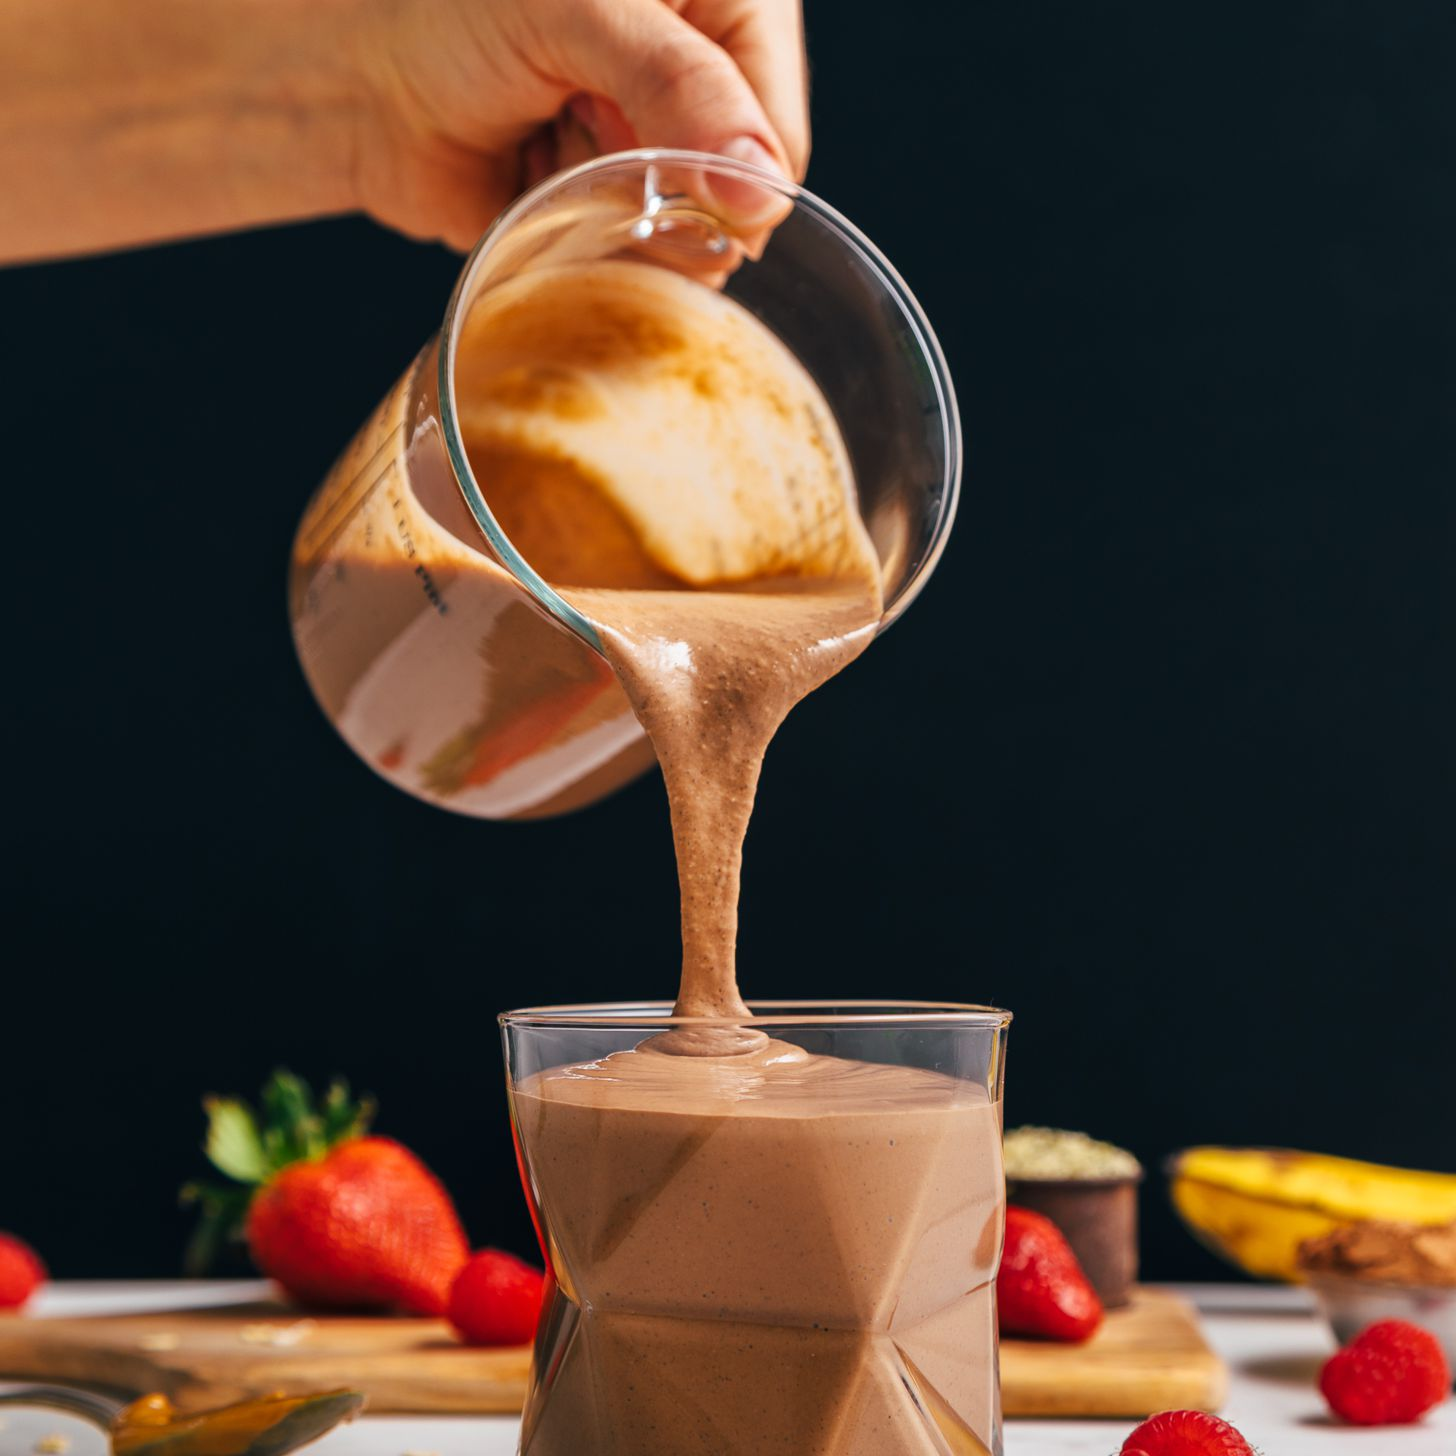 a chocolate protein shake being poured into a glass